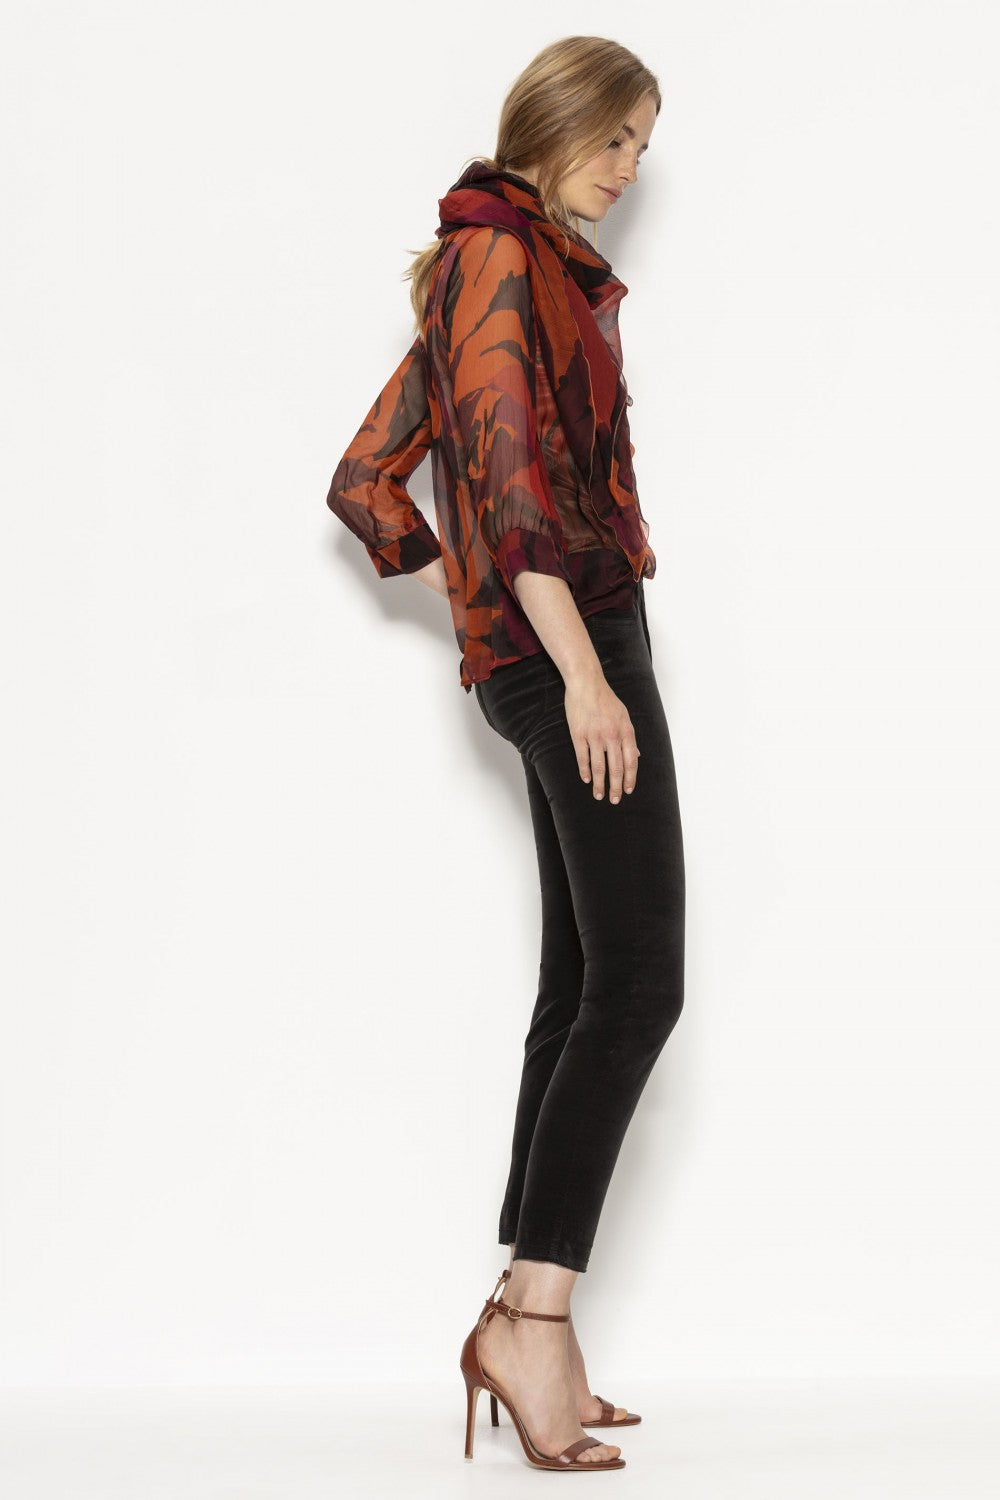 Skinny 5-Pocket Velvet Pants by Luisa Cerano at Jophiel